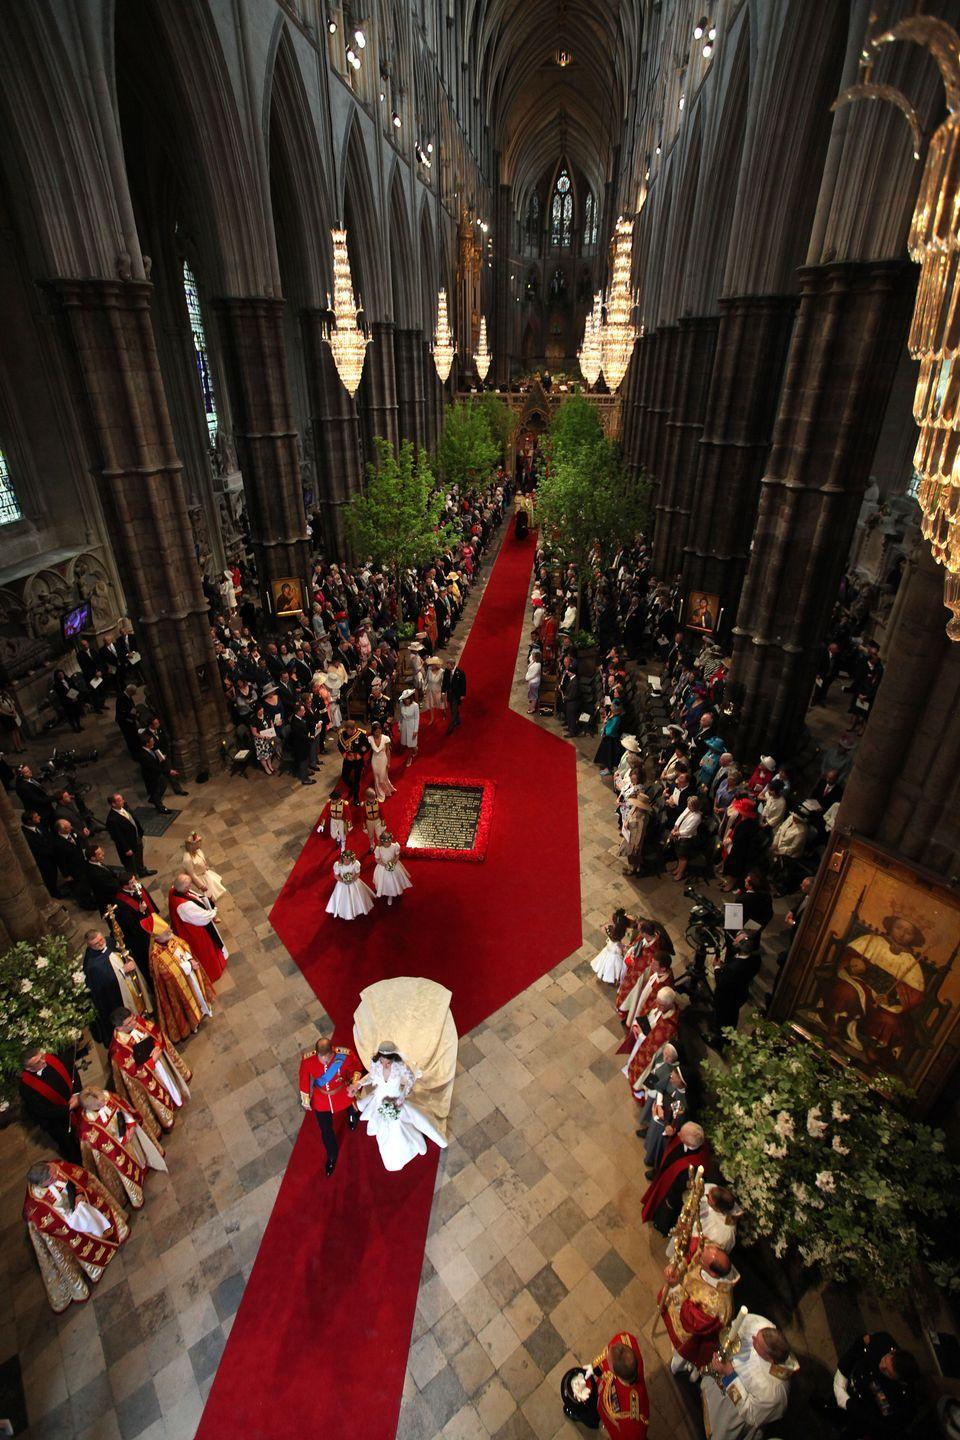 """<p>Six field maples and two hornbeams measuring up to 25-feet tall flanked the aisle along with <a href=""""http://www.bbc.com/news/uk-13212487"""" rel=""""nofollow noopener"""" target=""""_blank"""" data-ylk=""""slk:almost 30,000 flowers"""" class=""""link rapid-noclick-resp"""">almost 30,000 flowers</a> mostly grown at Windsor Great Park's Valley Gardens in Surrey. The neutral-colored blooms included azaleas as well as lily of the valley and myrtle in the bride's bouquet. <br></p>"""